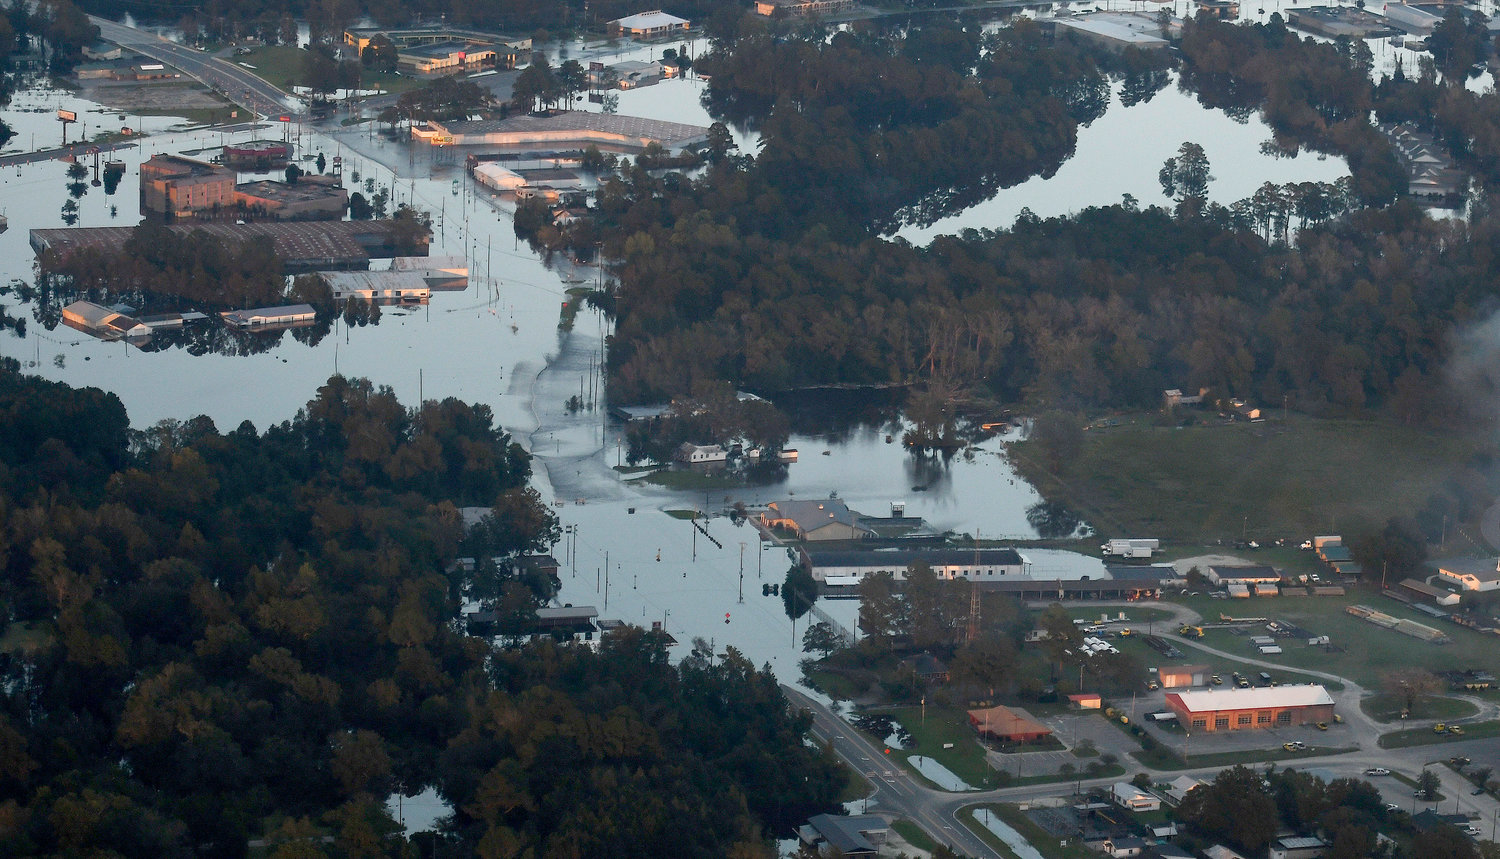 Areas of Kinston, N.C., remained under water late Friday, Sept. 21, 2018, as a result of Hurricane Florence. More than two weeks after Florence came ashore along the coast of North Carolina, the death toll from the storm continues to rise.